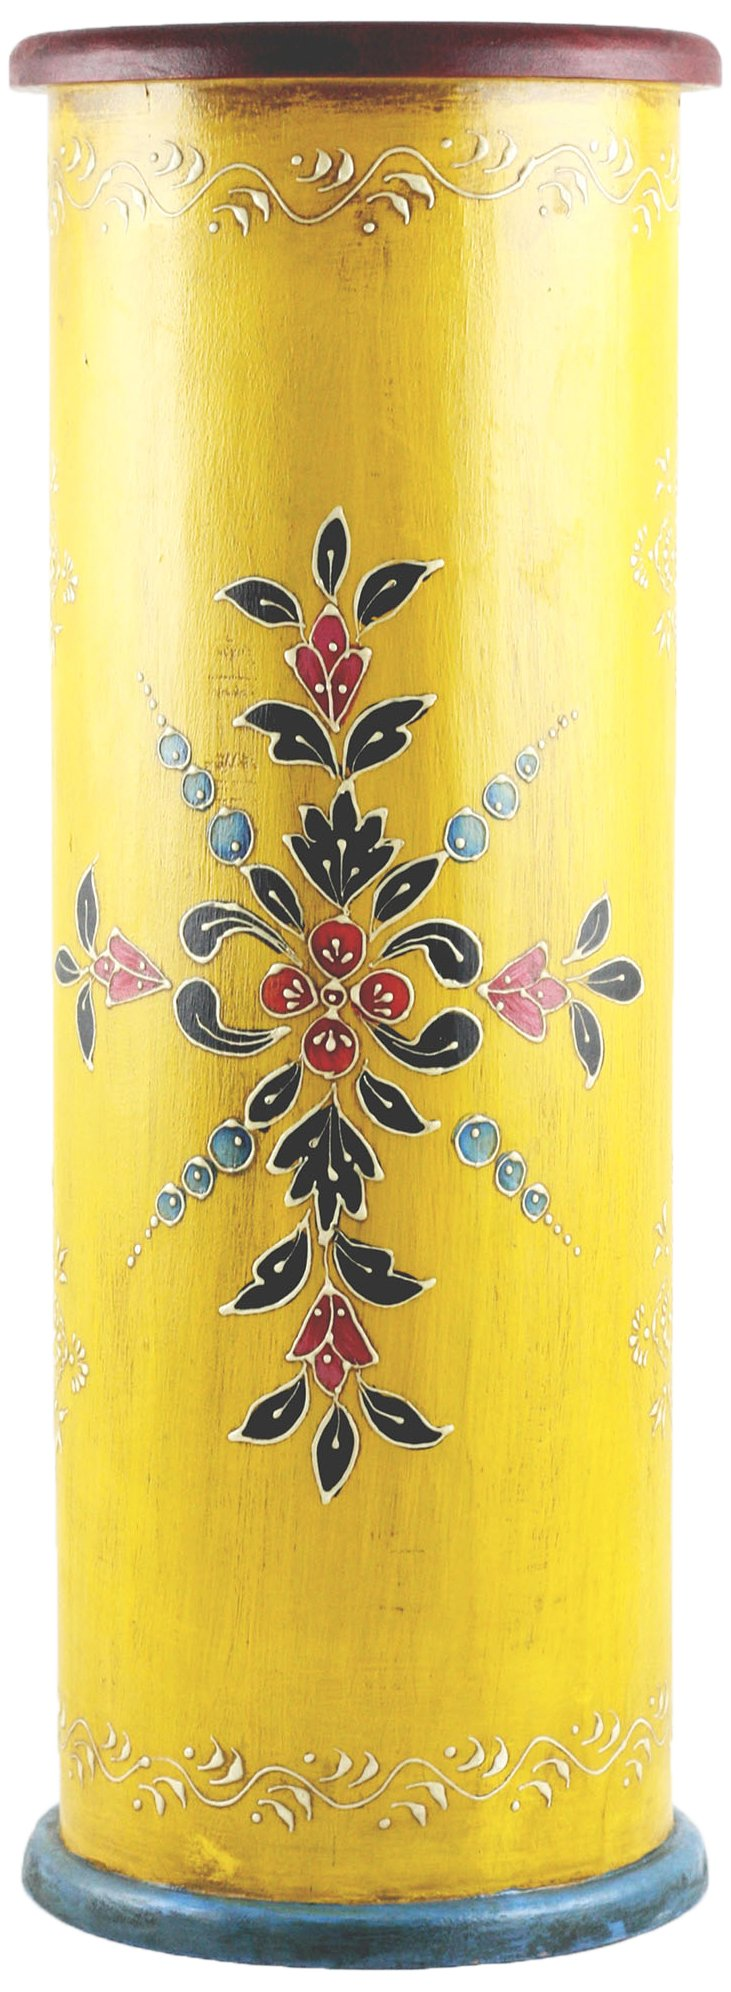 Timbergirl Hand-Crafted Hand-Painted Wooden Umbrella Stand, Yellow